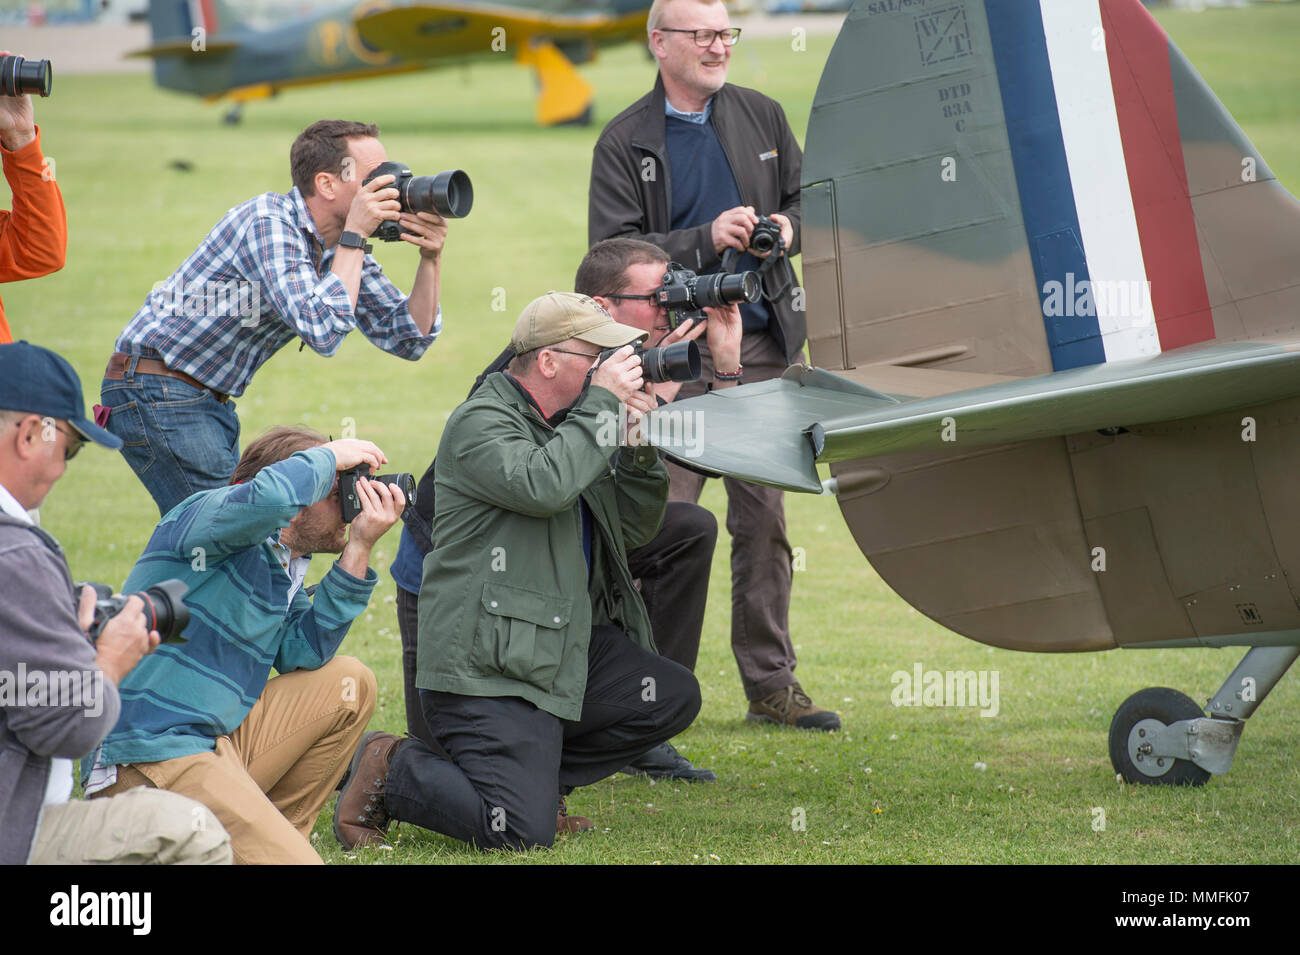 IWM Duxford, Cambridgeshire, UK. 11 May, 2018. Entry level photographers and enthusiasts get to grips with aviation photography on the Airfield at IWM Duxford with a 40s dressed model and Supermarine Spitfire for Best of British day. Photography Days are run at Duxford up to 7 September, themed as best of British, Royal Air Force and US Air Force allowing participants to get up close to aircraft static and flying. Credit: Malcolm Park/Alamy Live News. - Stock Image